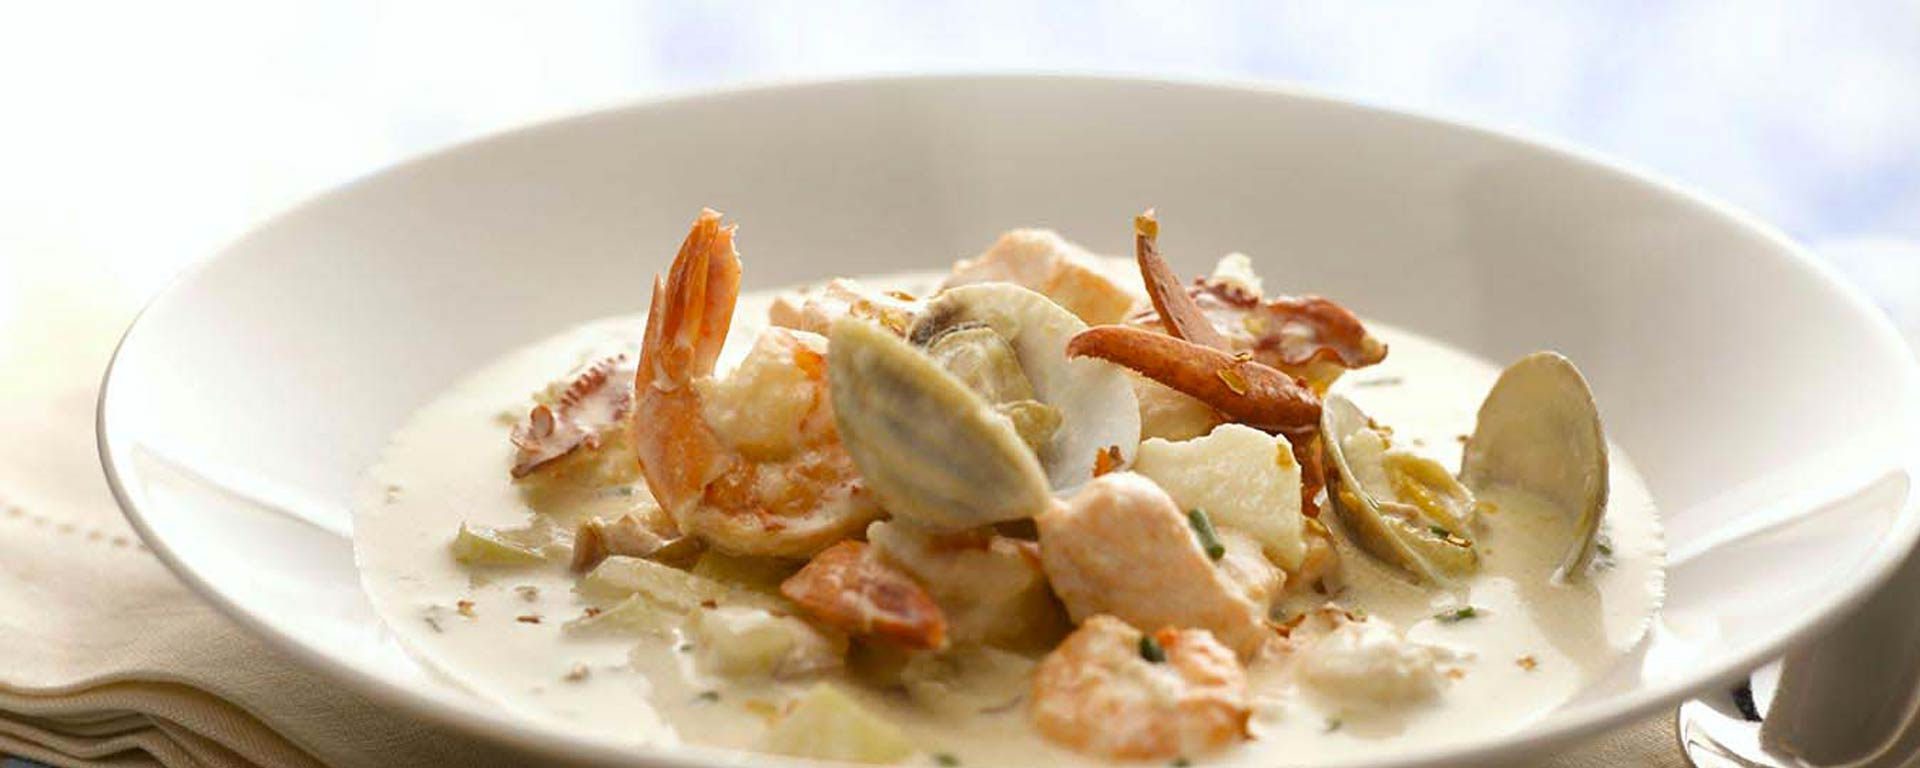 Photo for - Fairmont Seafood Chowder